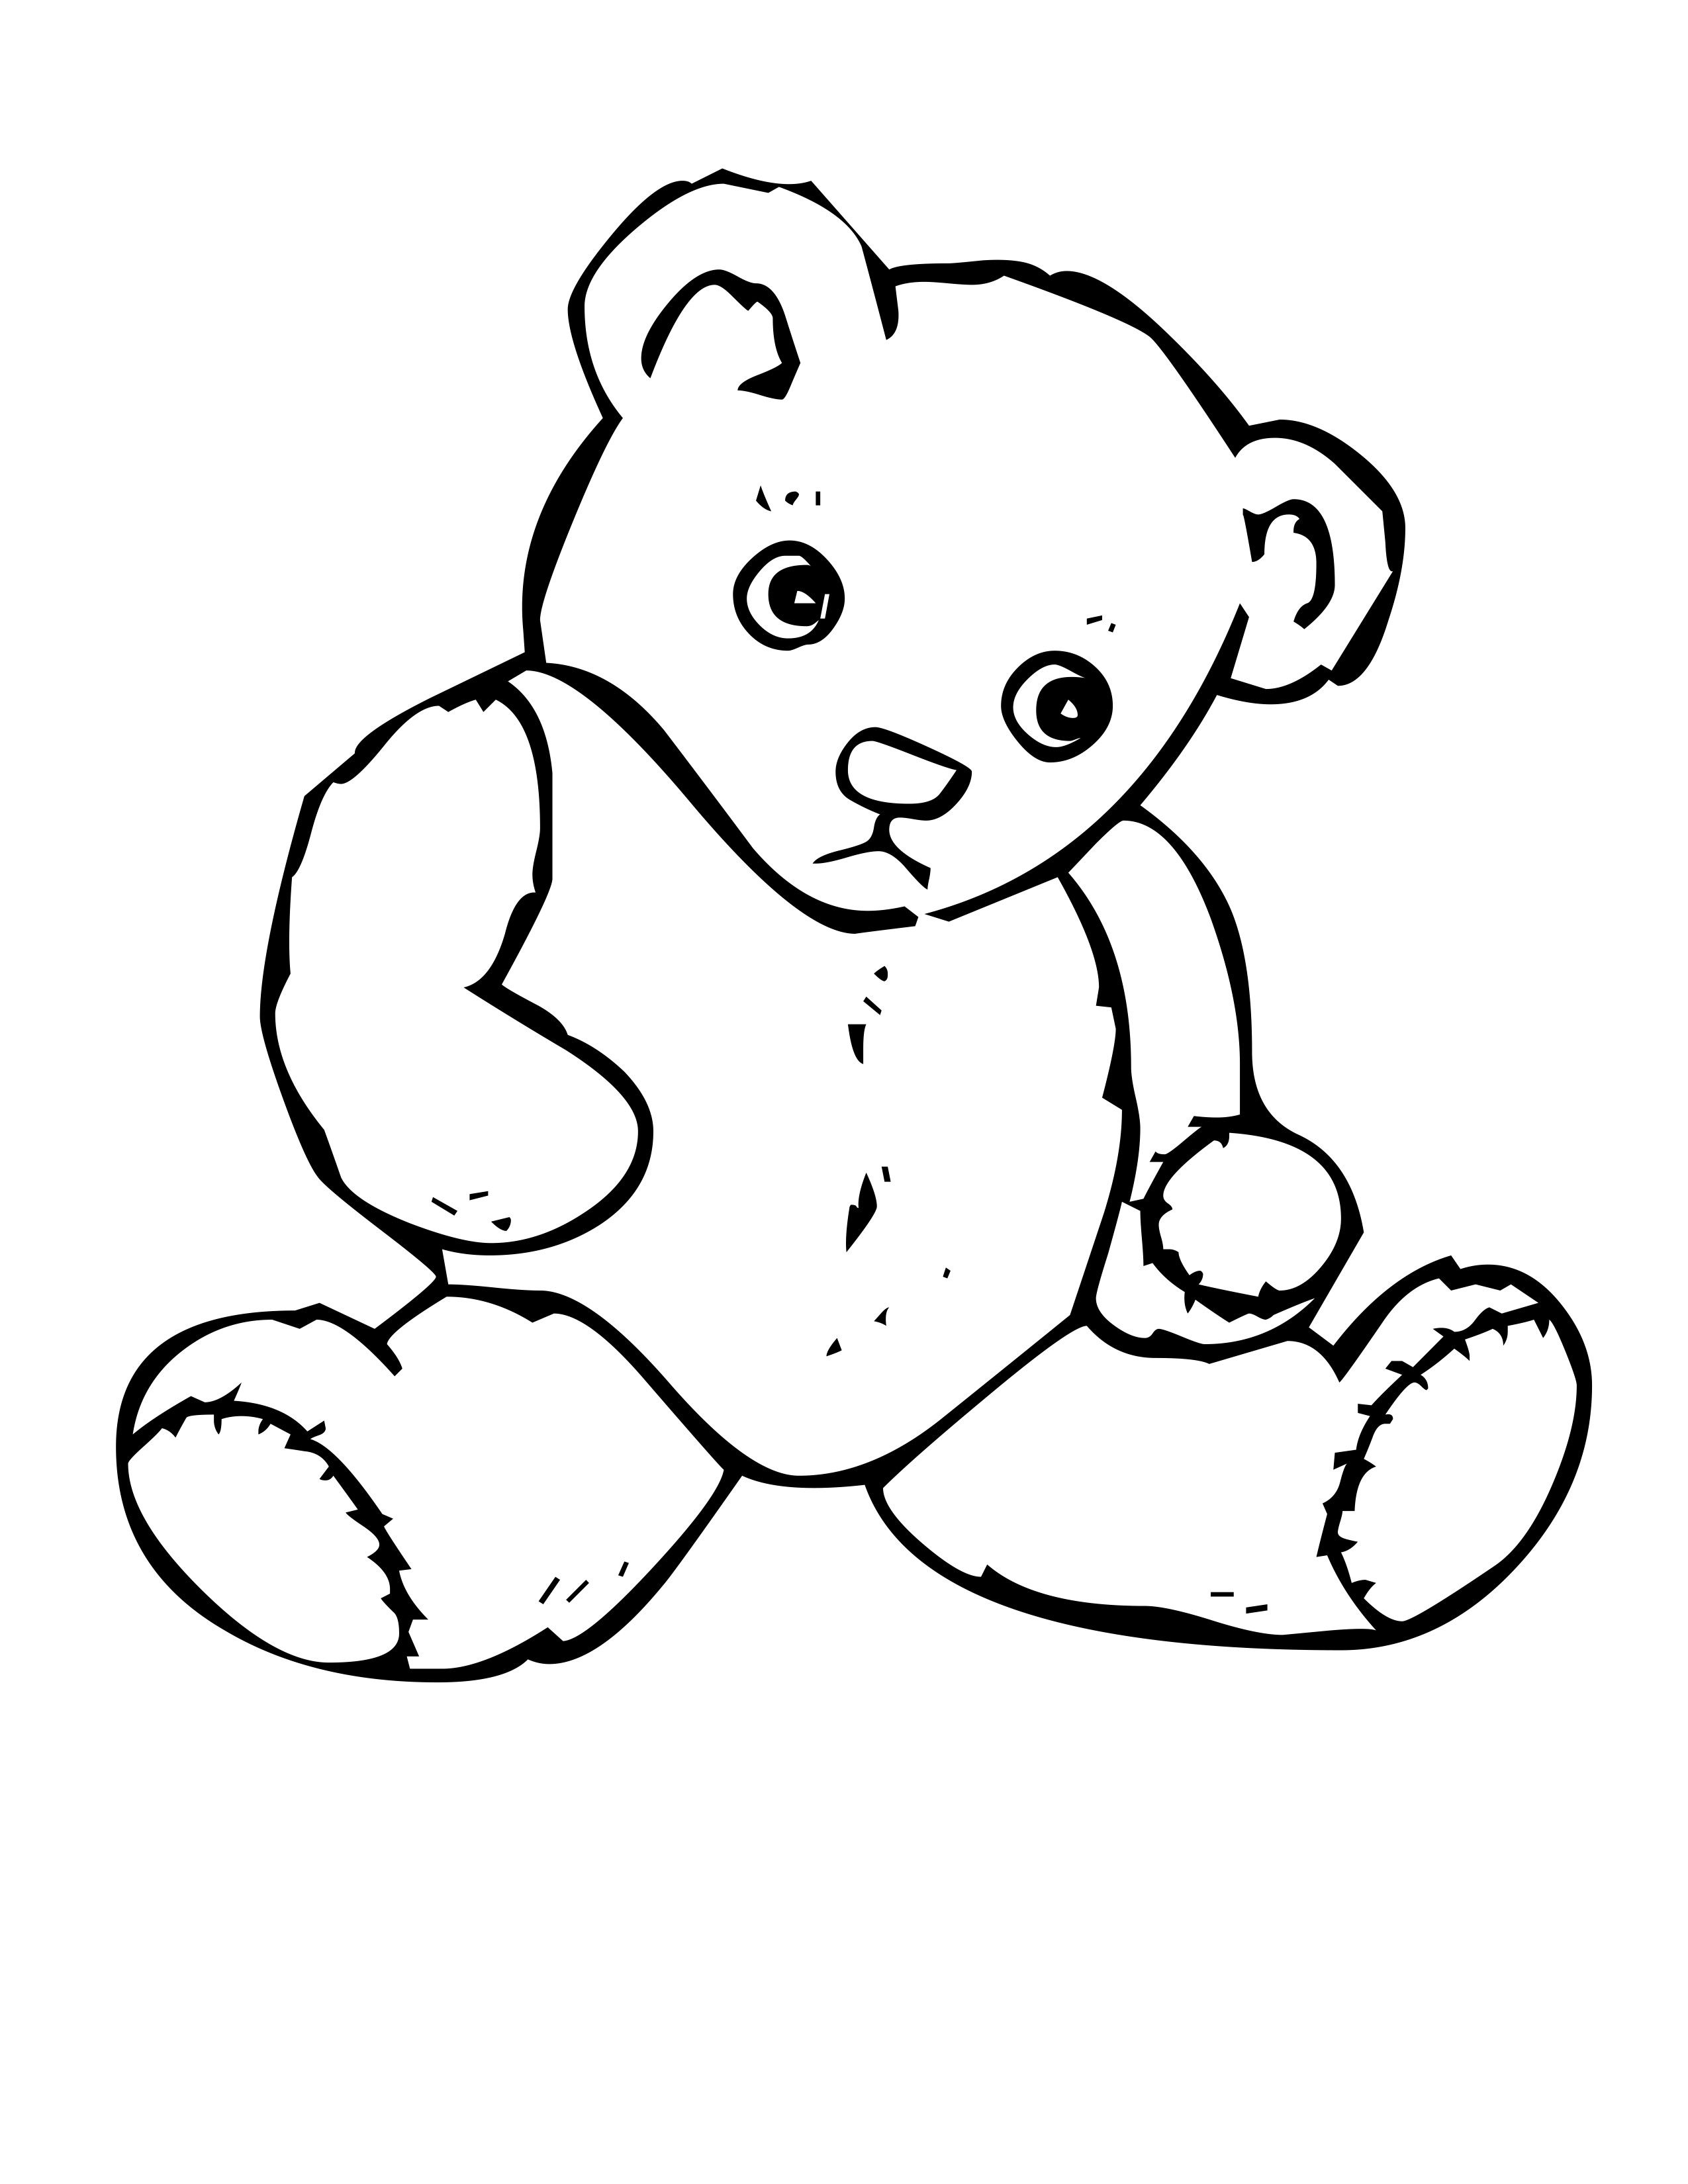 Cute Teddy Bear Coloring Pages Bear Coloring Pages Bear Coloring Pages Teddy Bear Coloring Pages Polar Bear Coloring Page